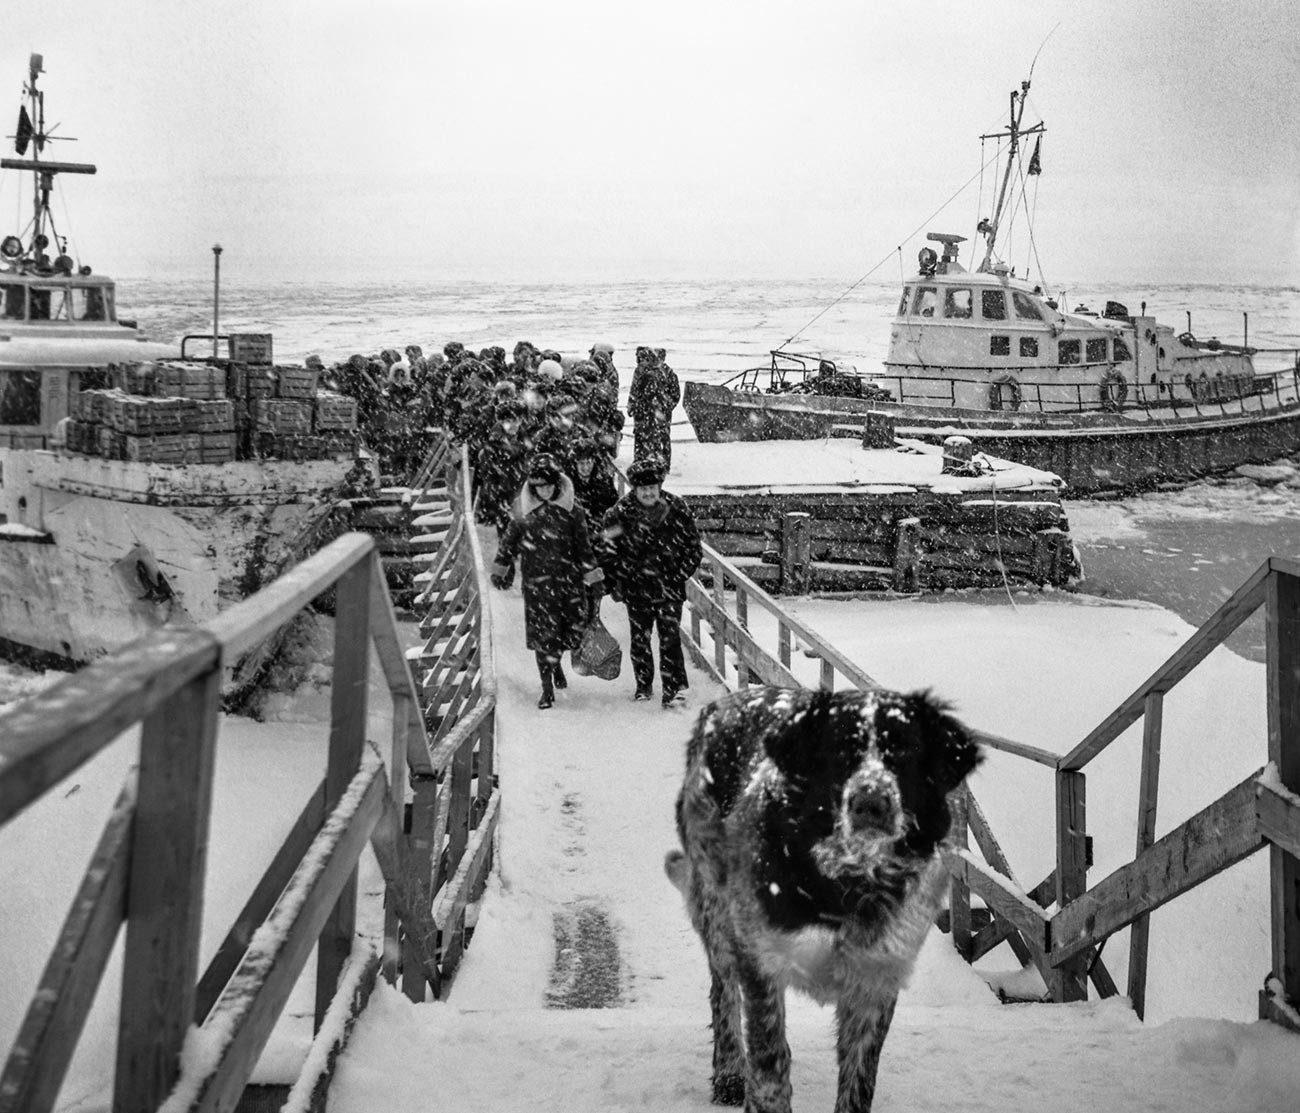 Heavy snowfall in the passenger jetty of the island, Dixon, approximately, September 1980.